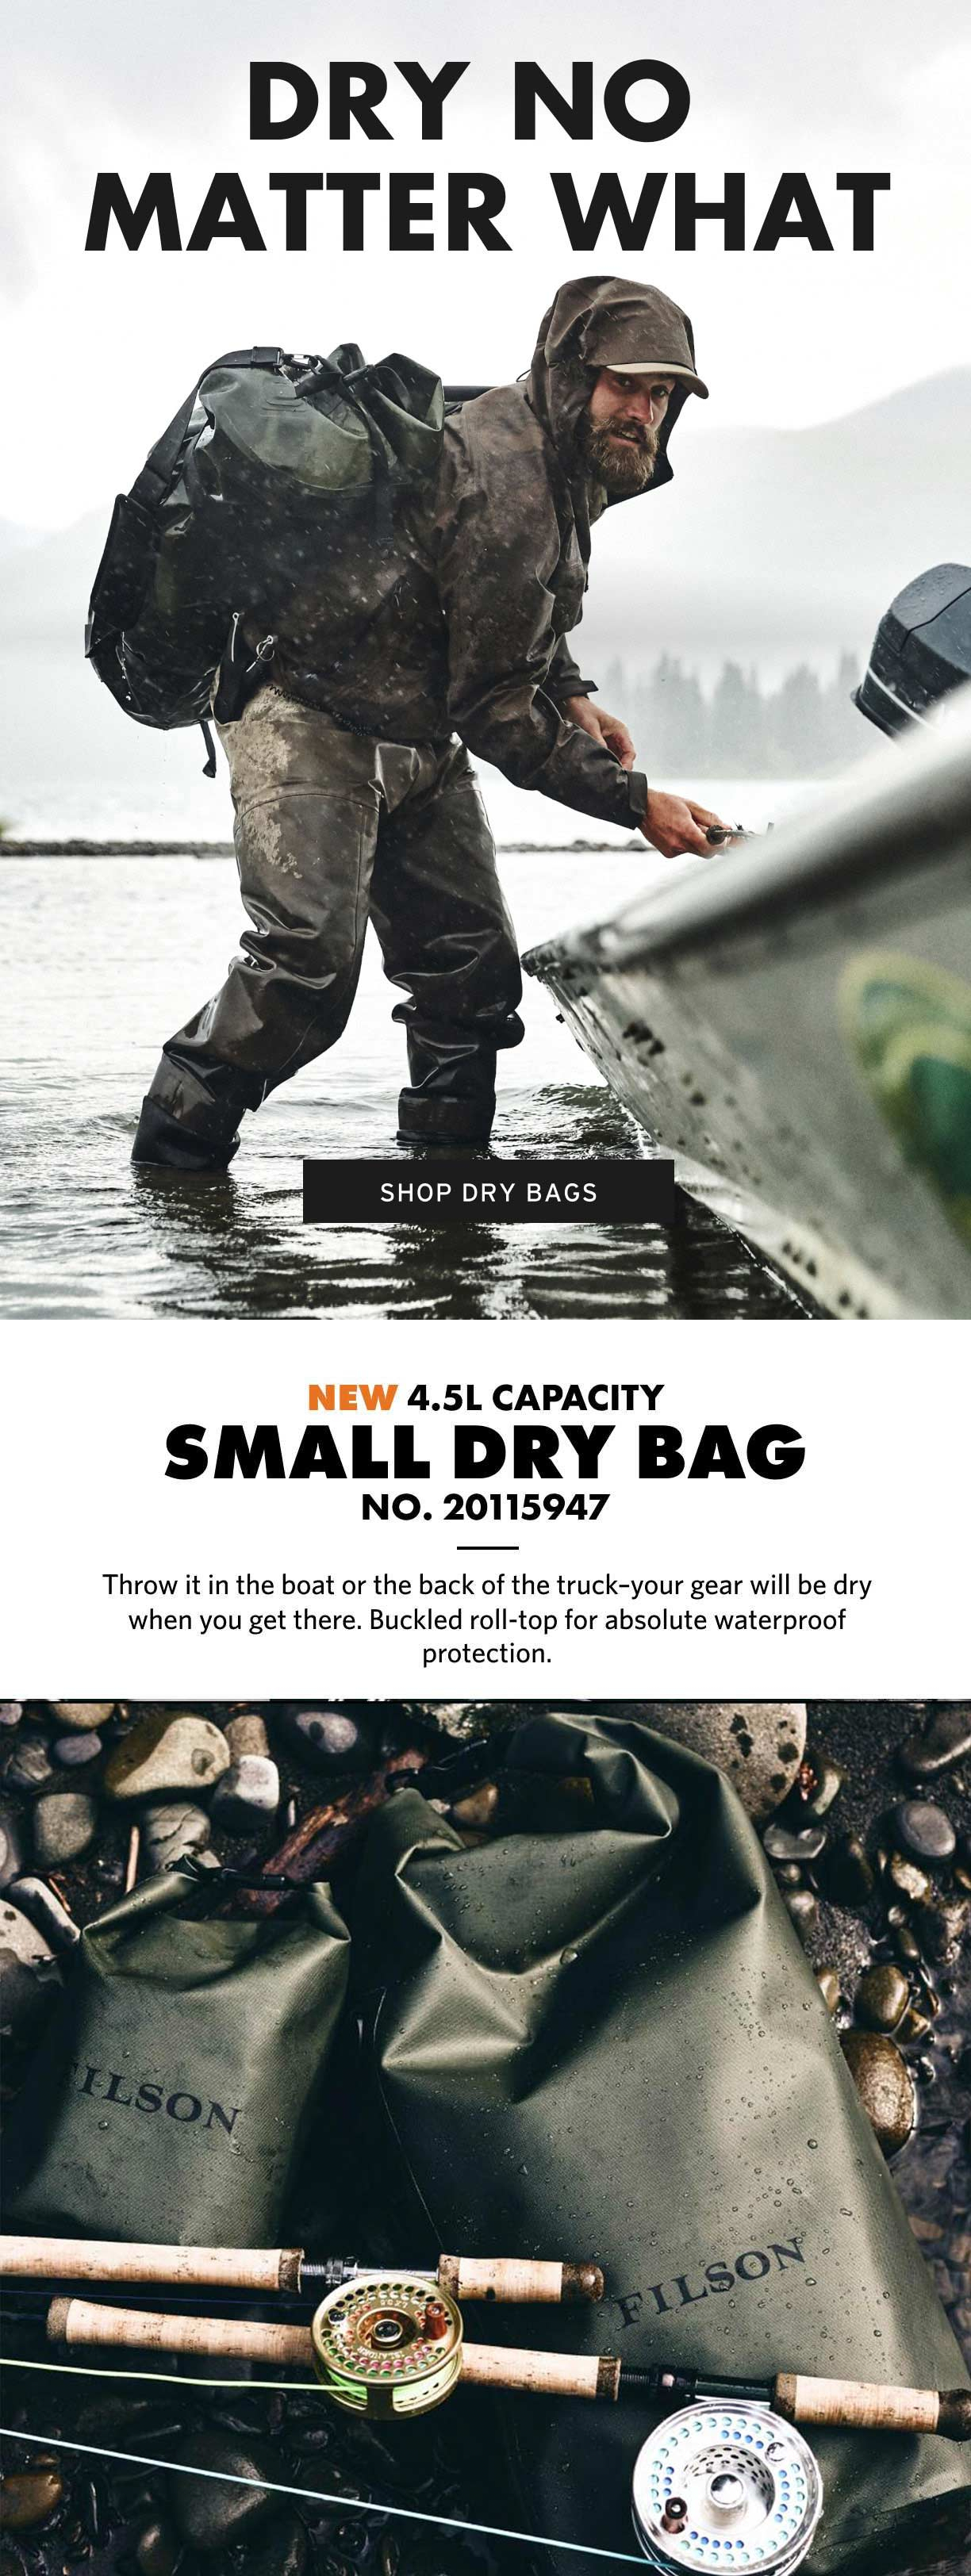 Filson Dry Bag Small Productinformation